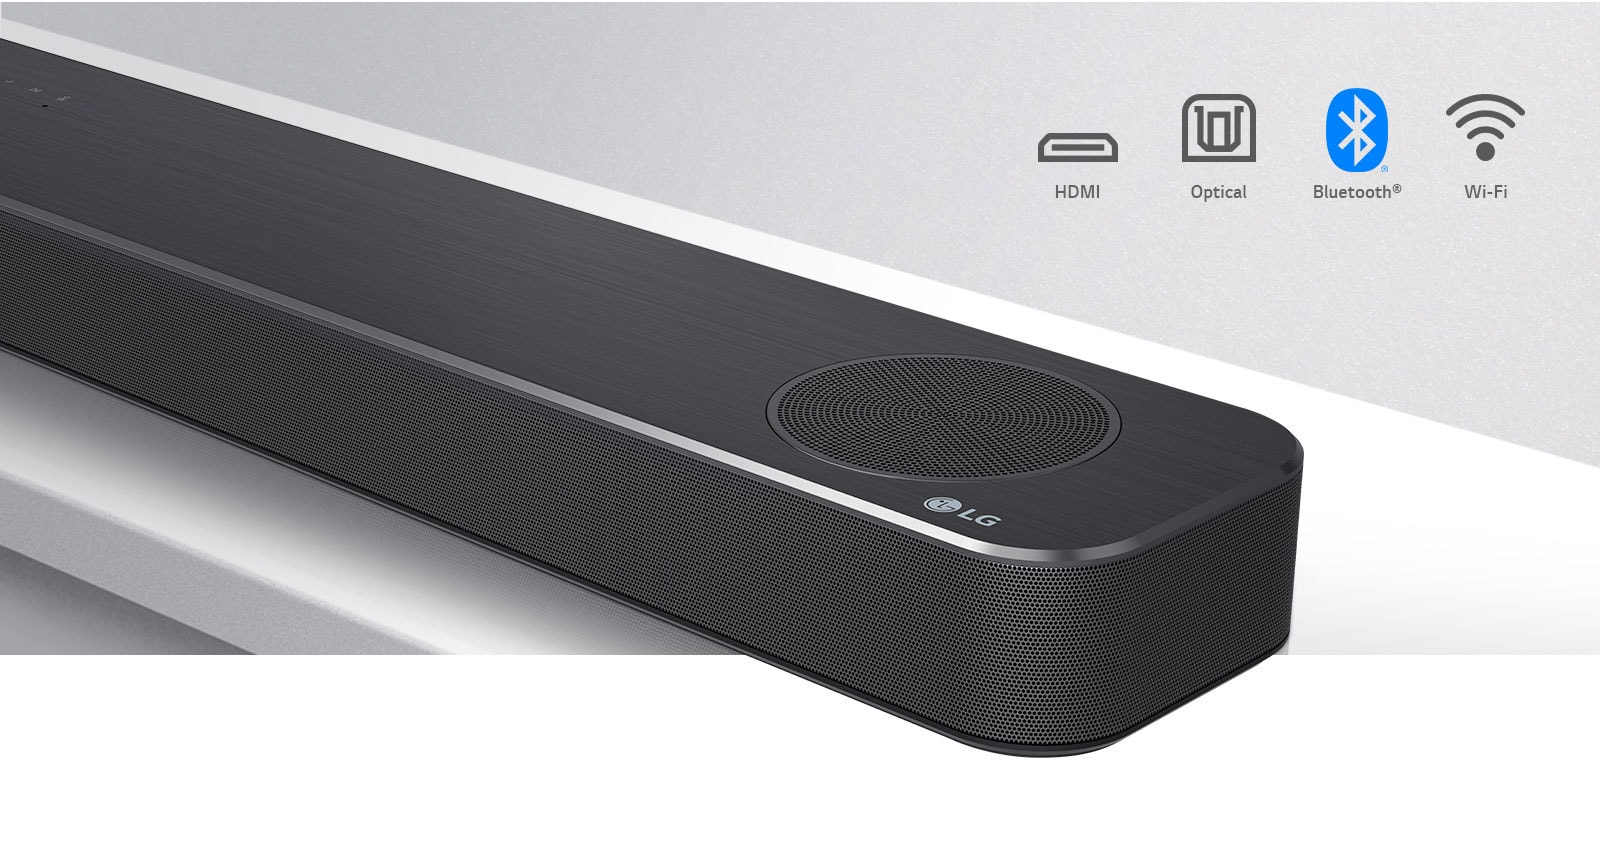 Close-up LG Soundbar right side with LG logo on the bottom right corner. Connectivity icons shown above the product.